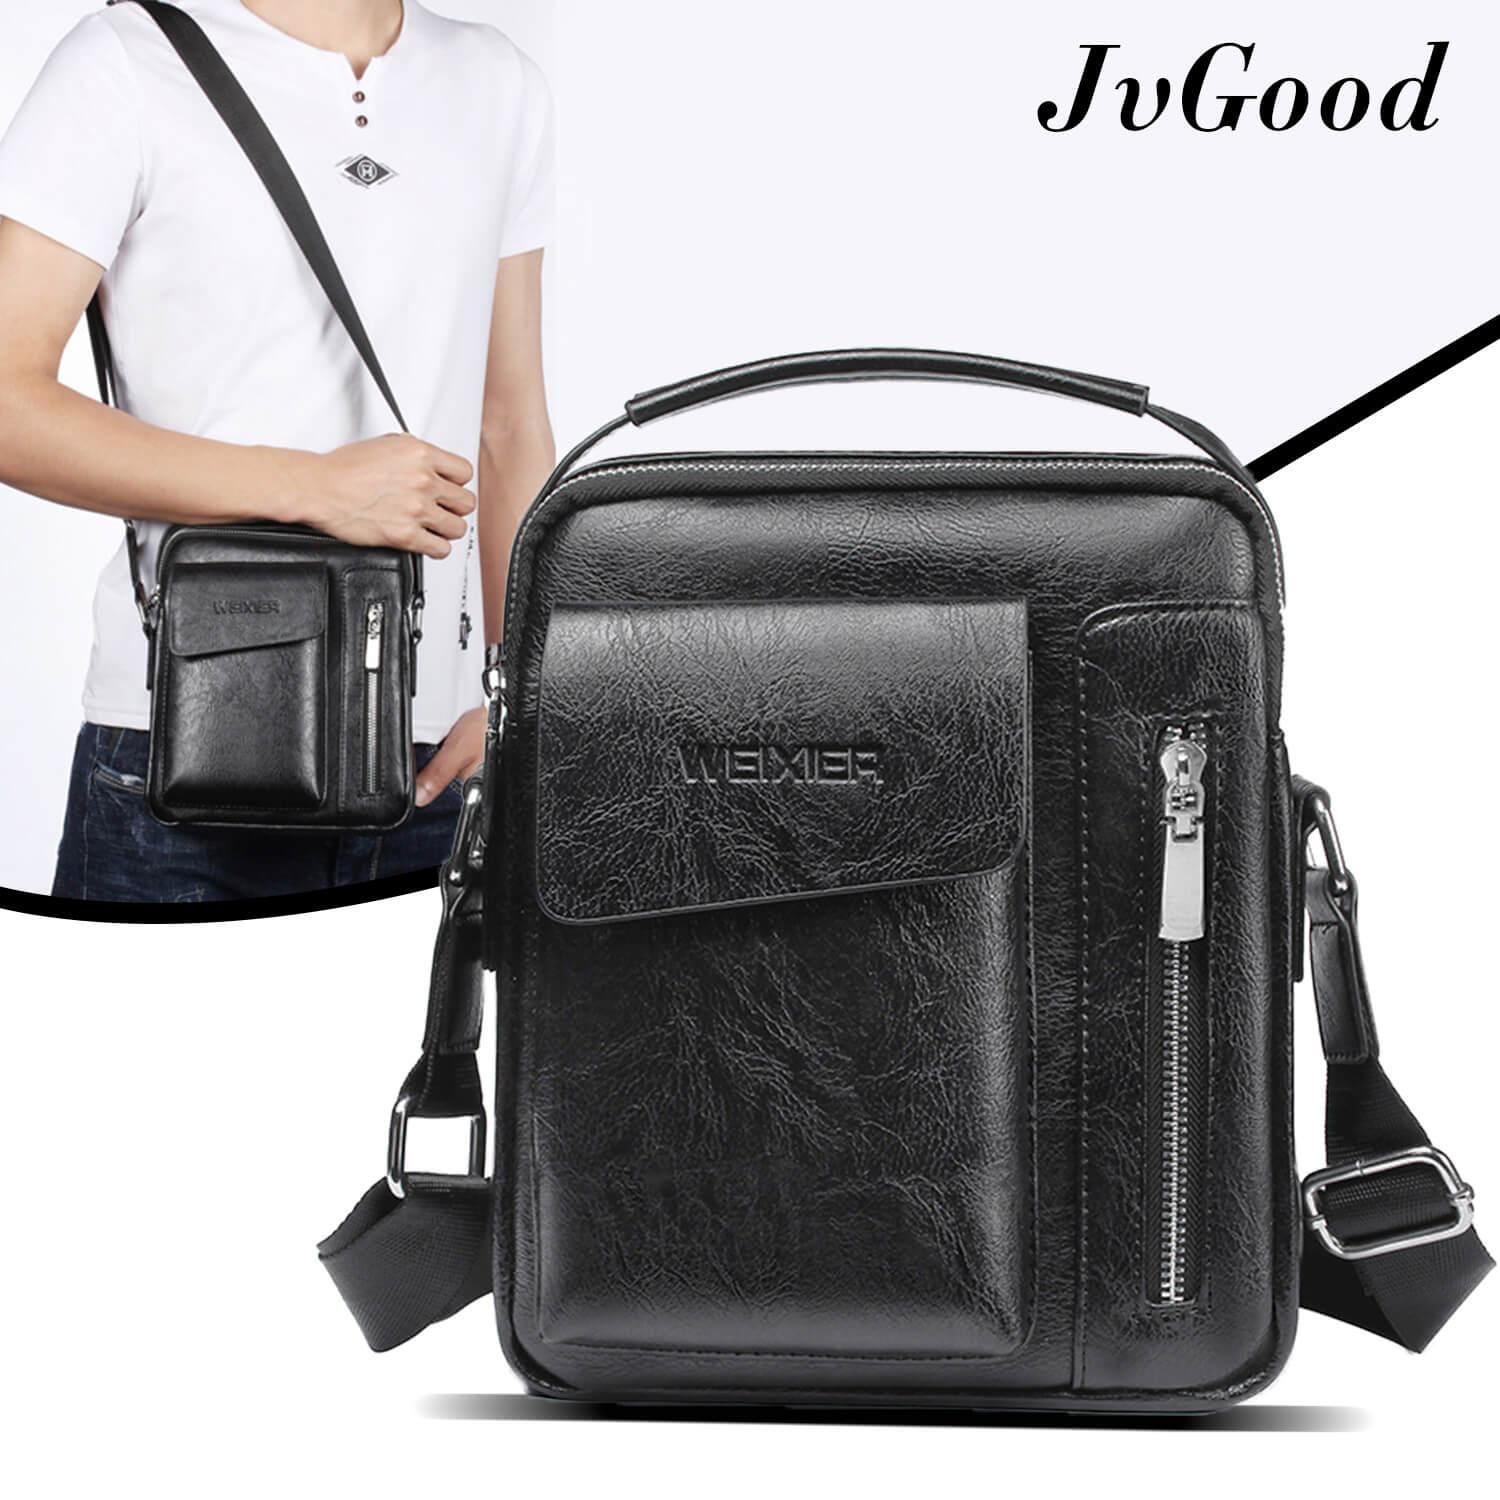 6683da48e86f JvGood Messenger Bags PU Leather Sling Shoulder Bag Male Travel Casual  Crossbody Bags Small Flap Handbags